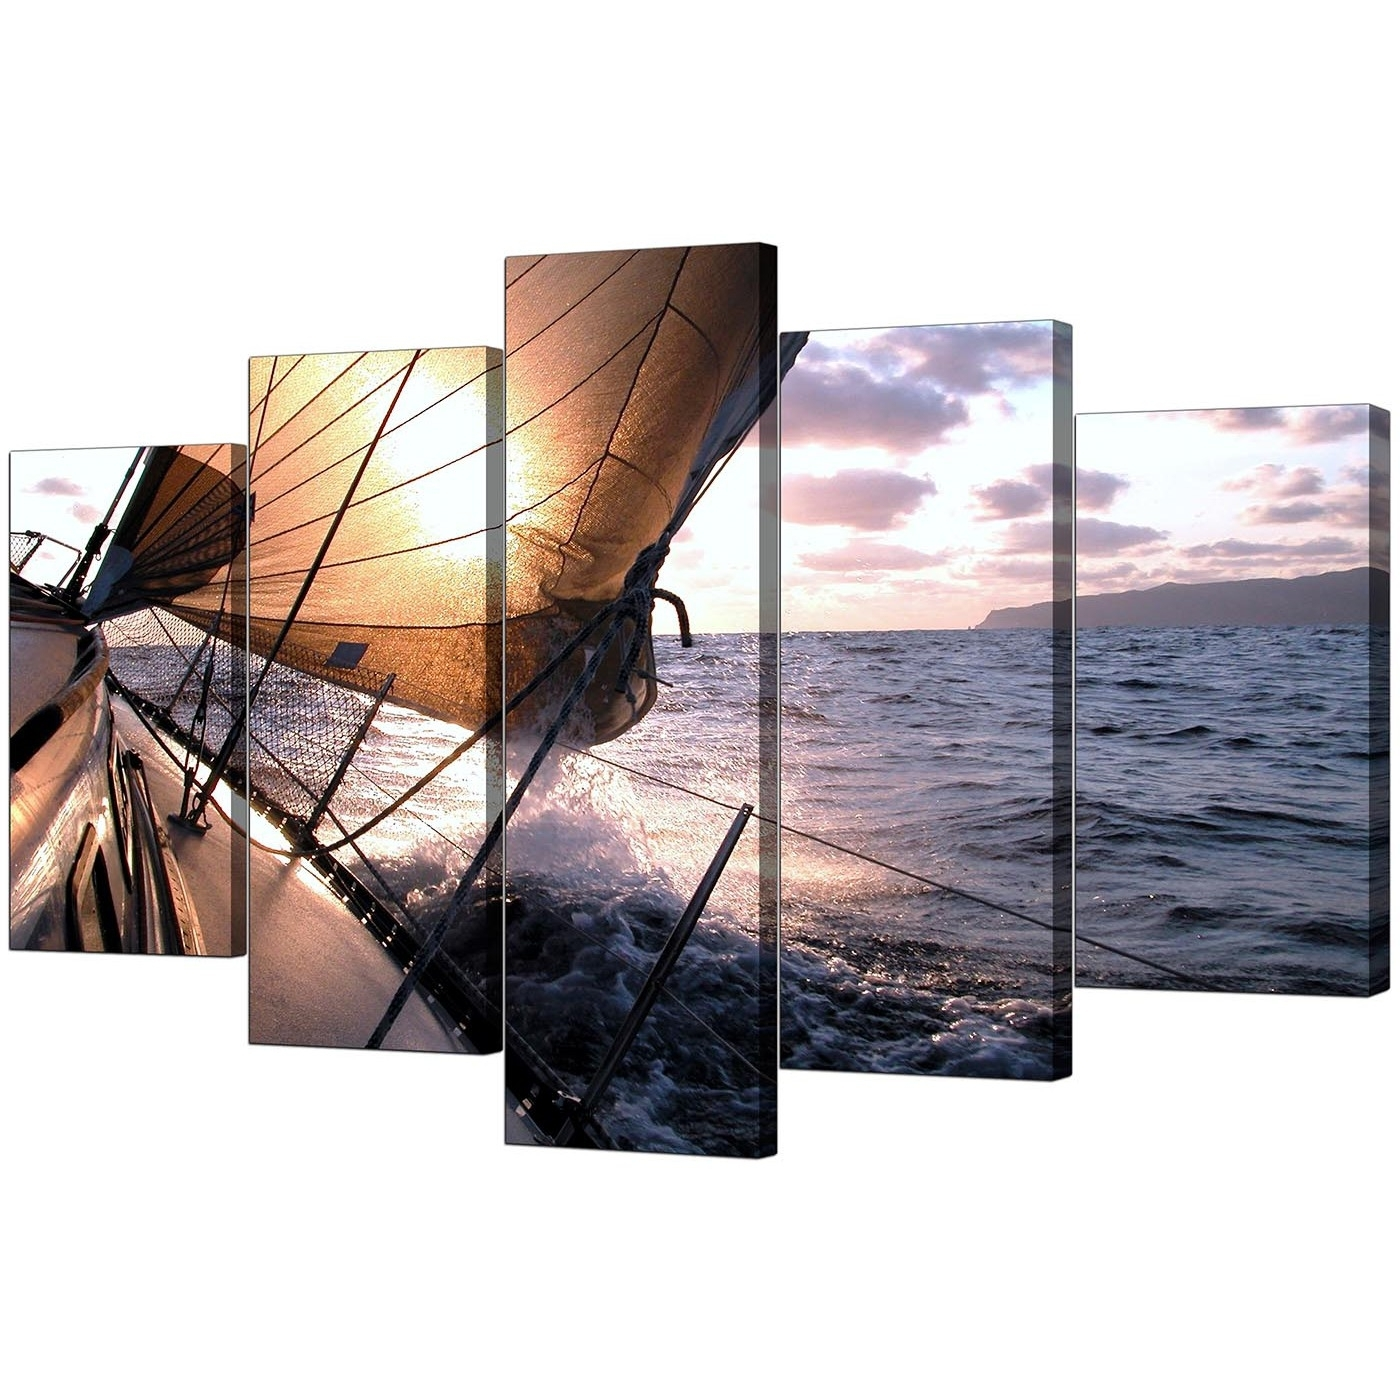 Boat Canvas Prints Uk For Your Living Room – 5 Piece Intended For Recent 5 Piece Wall Art (View 7 of 15)